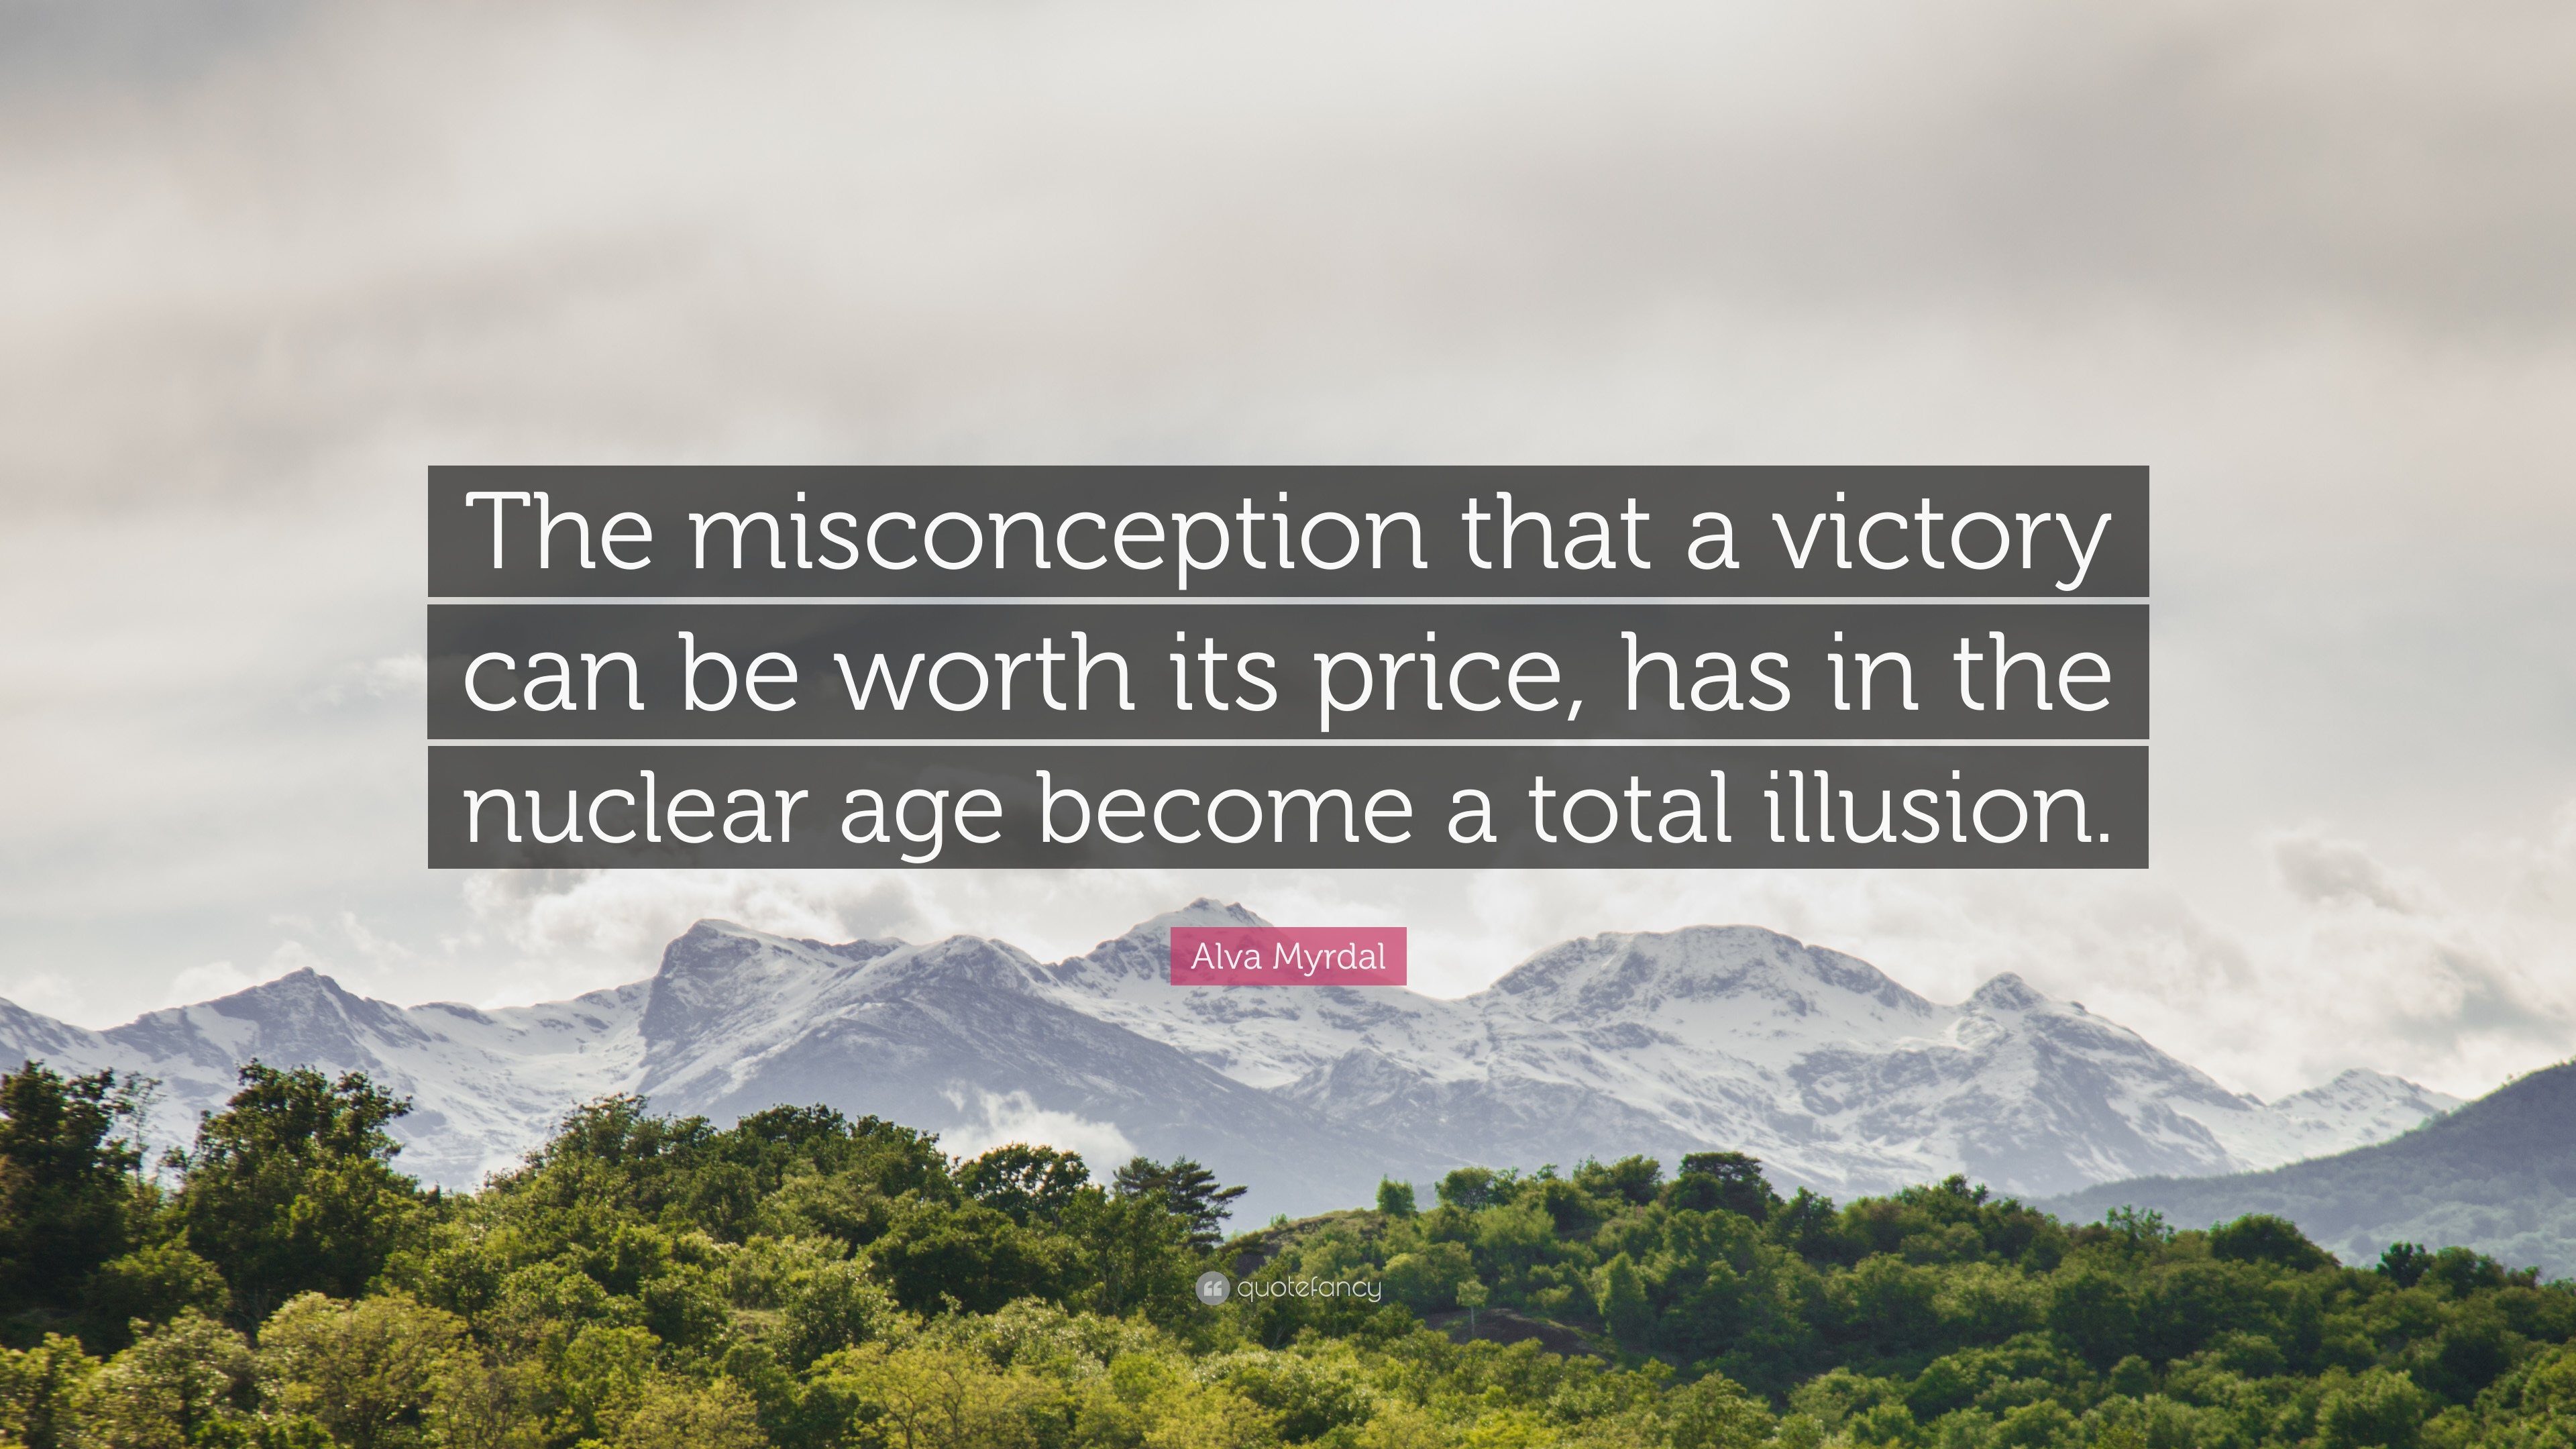 Alva Myrdal Quote The Misconception That A Victory Can Be Worth Its Price Has In The Nuclear Age Become A Total Illusion 7 Wallpapers Quotefancy